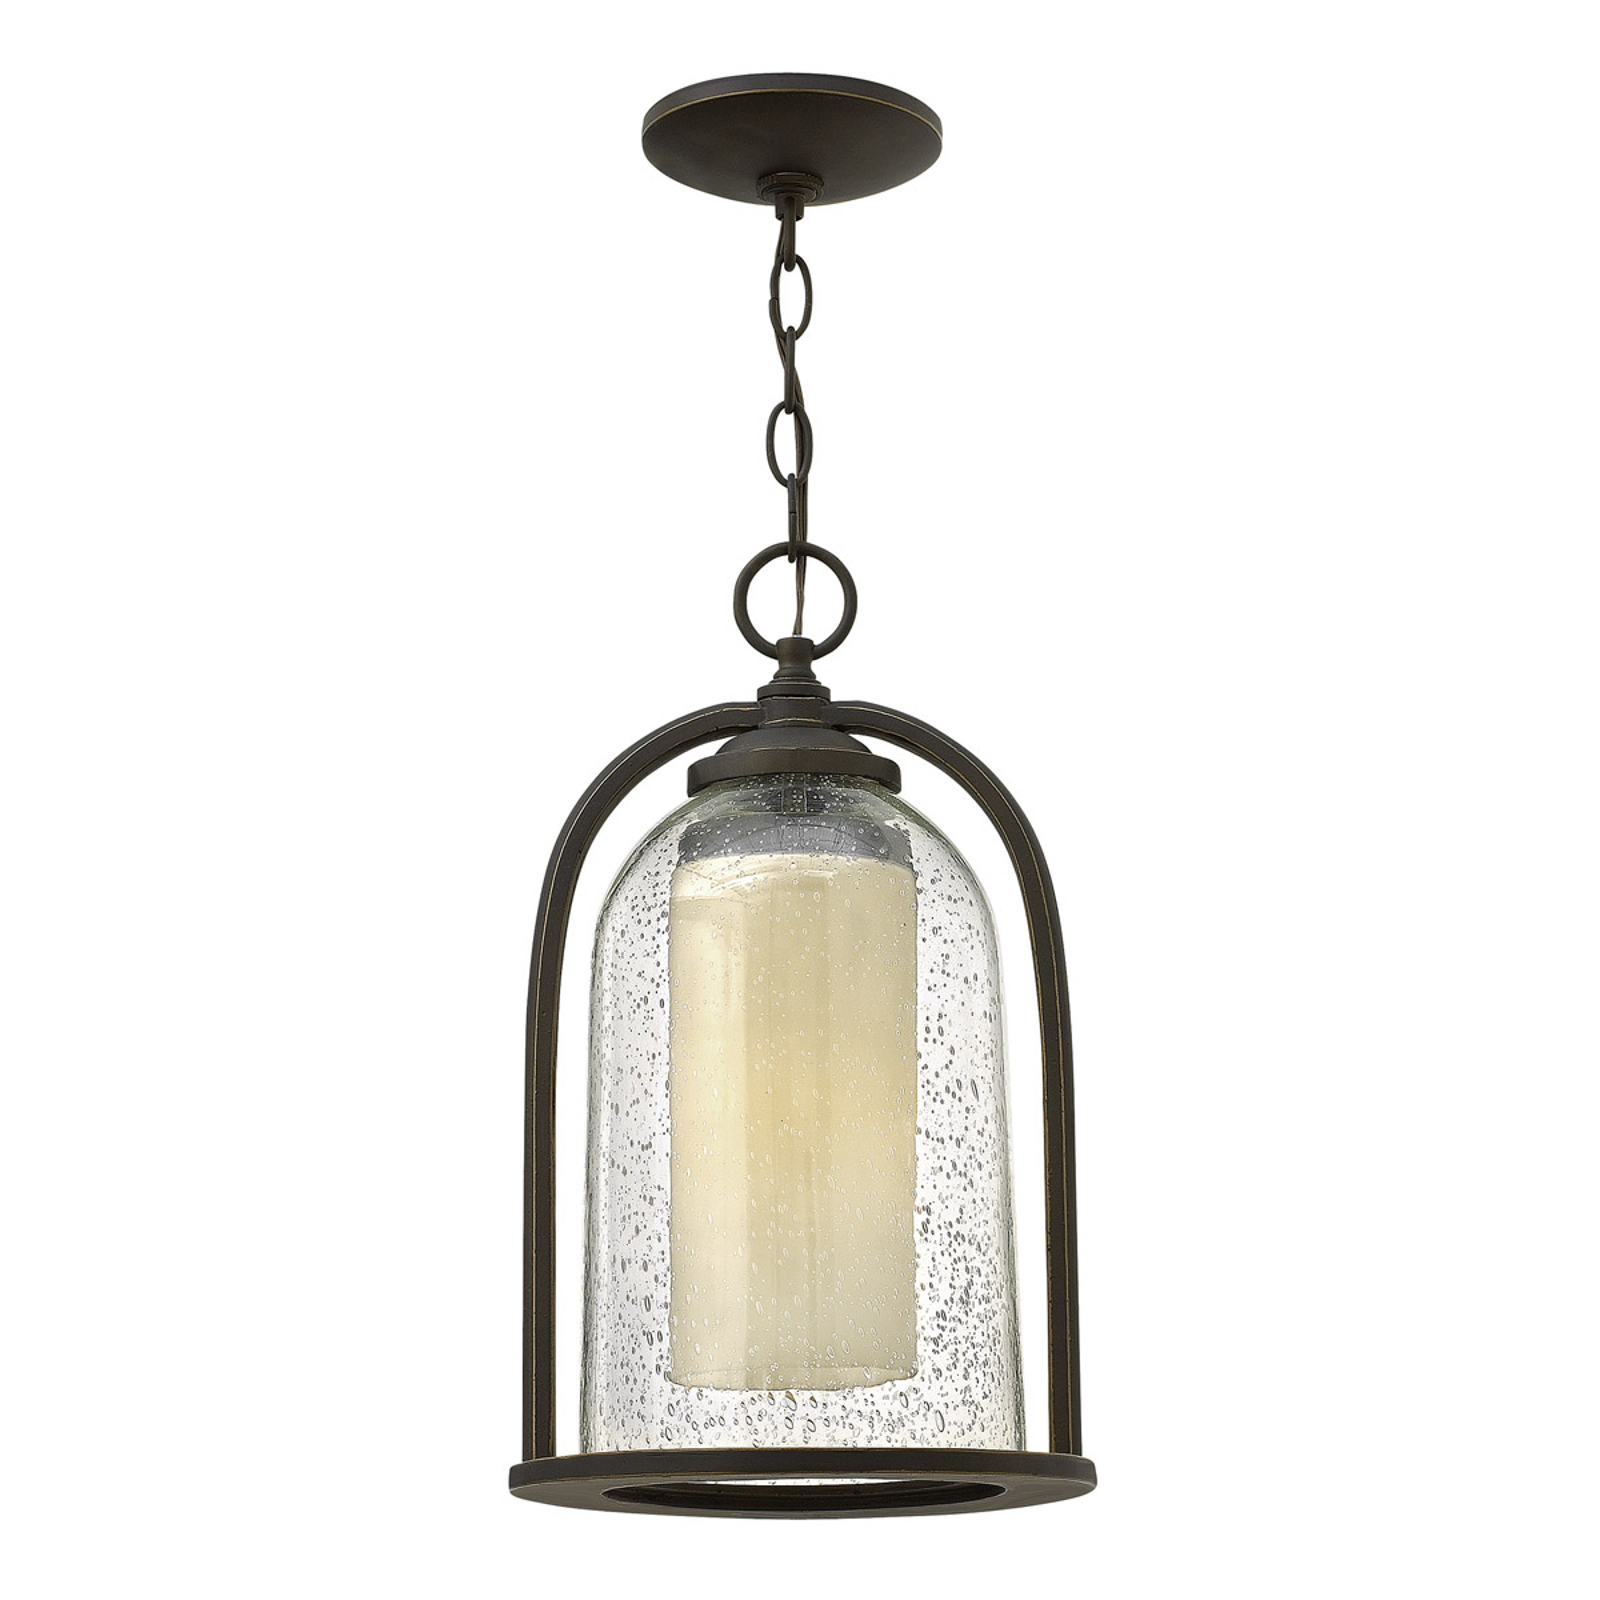 Double-shaded hanging lamp Quincy for outdoors_3048375_1